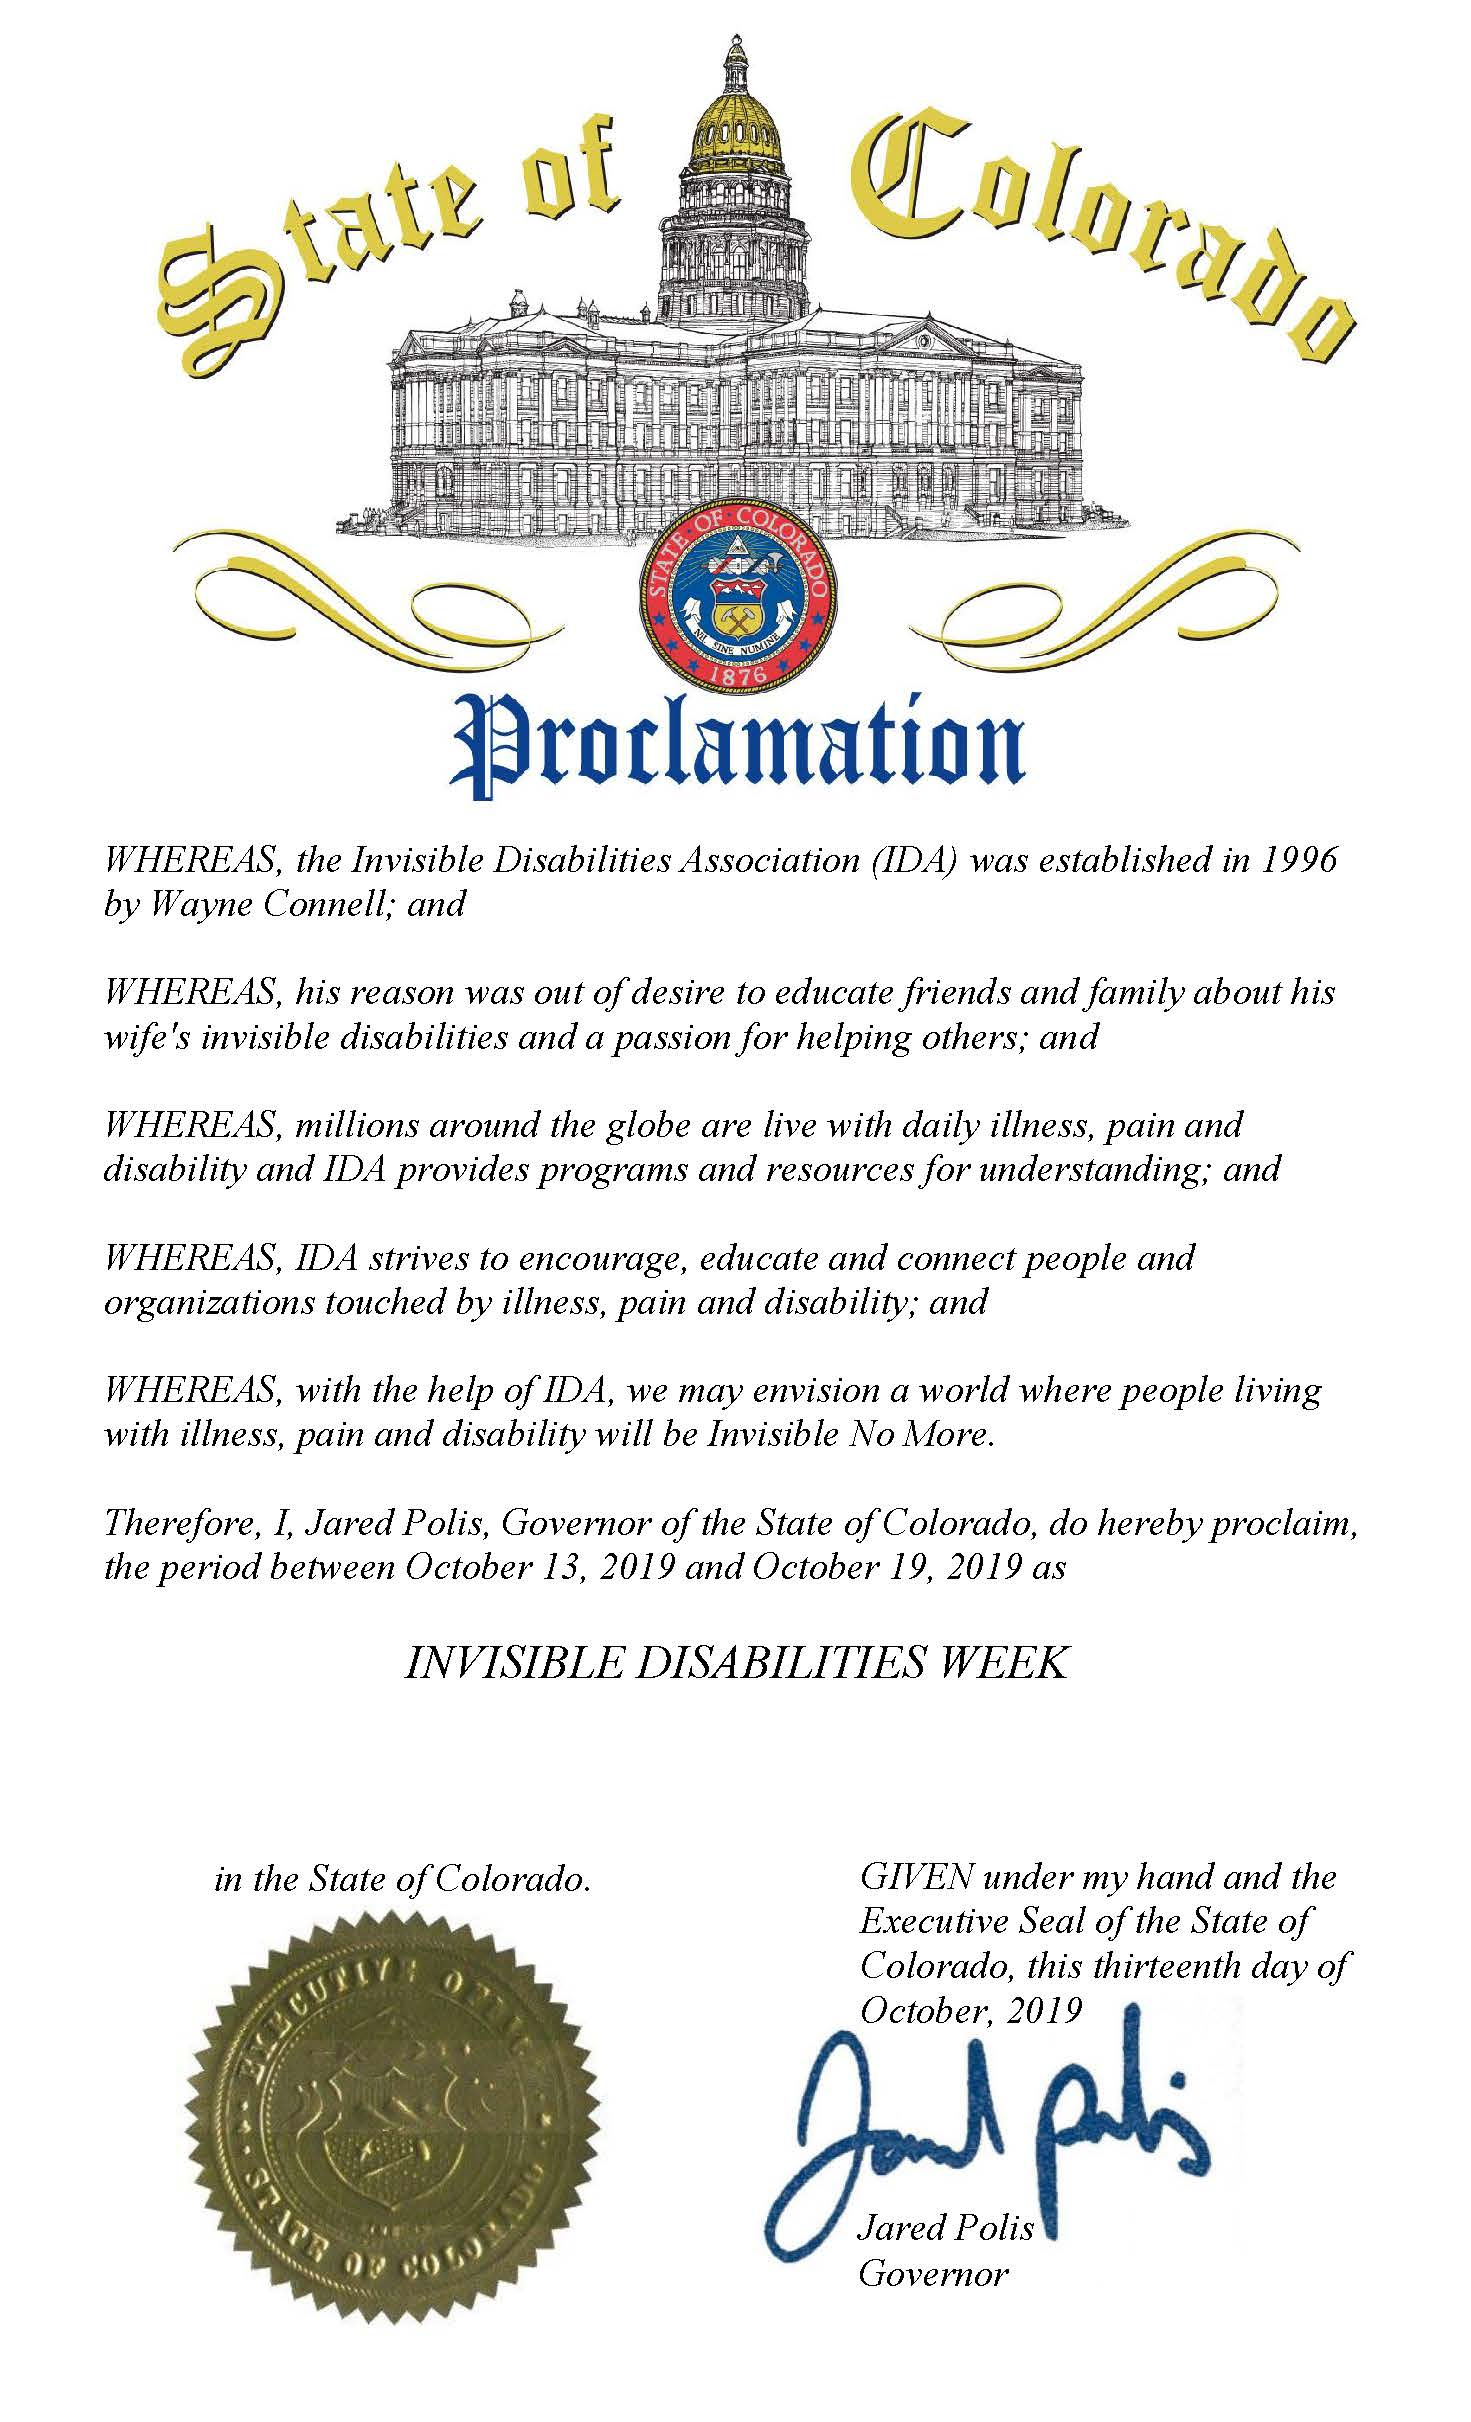 State of Colorado Invisible Disabilities Week Proclamation 2019